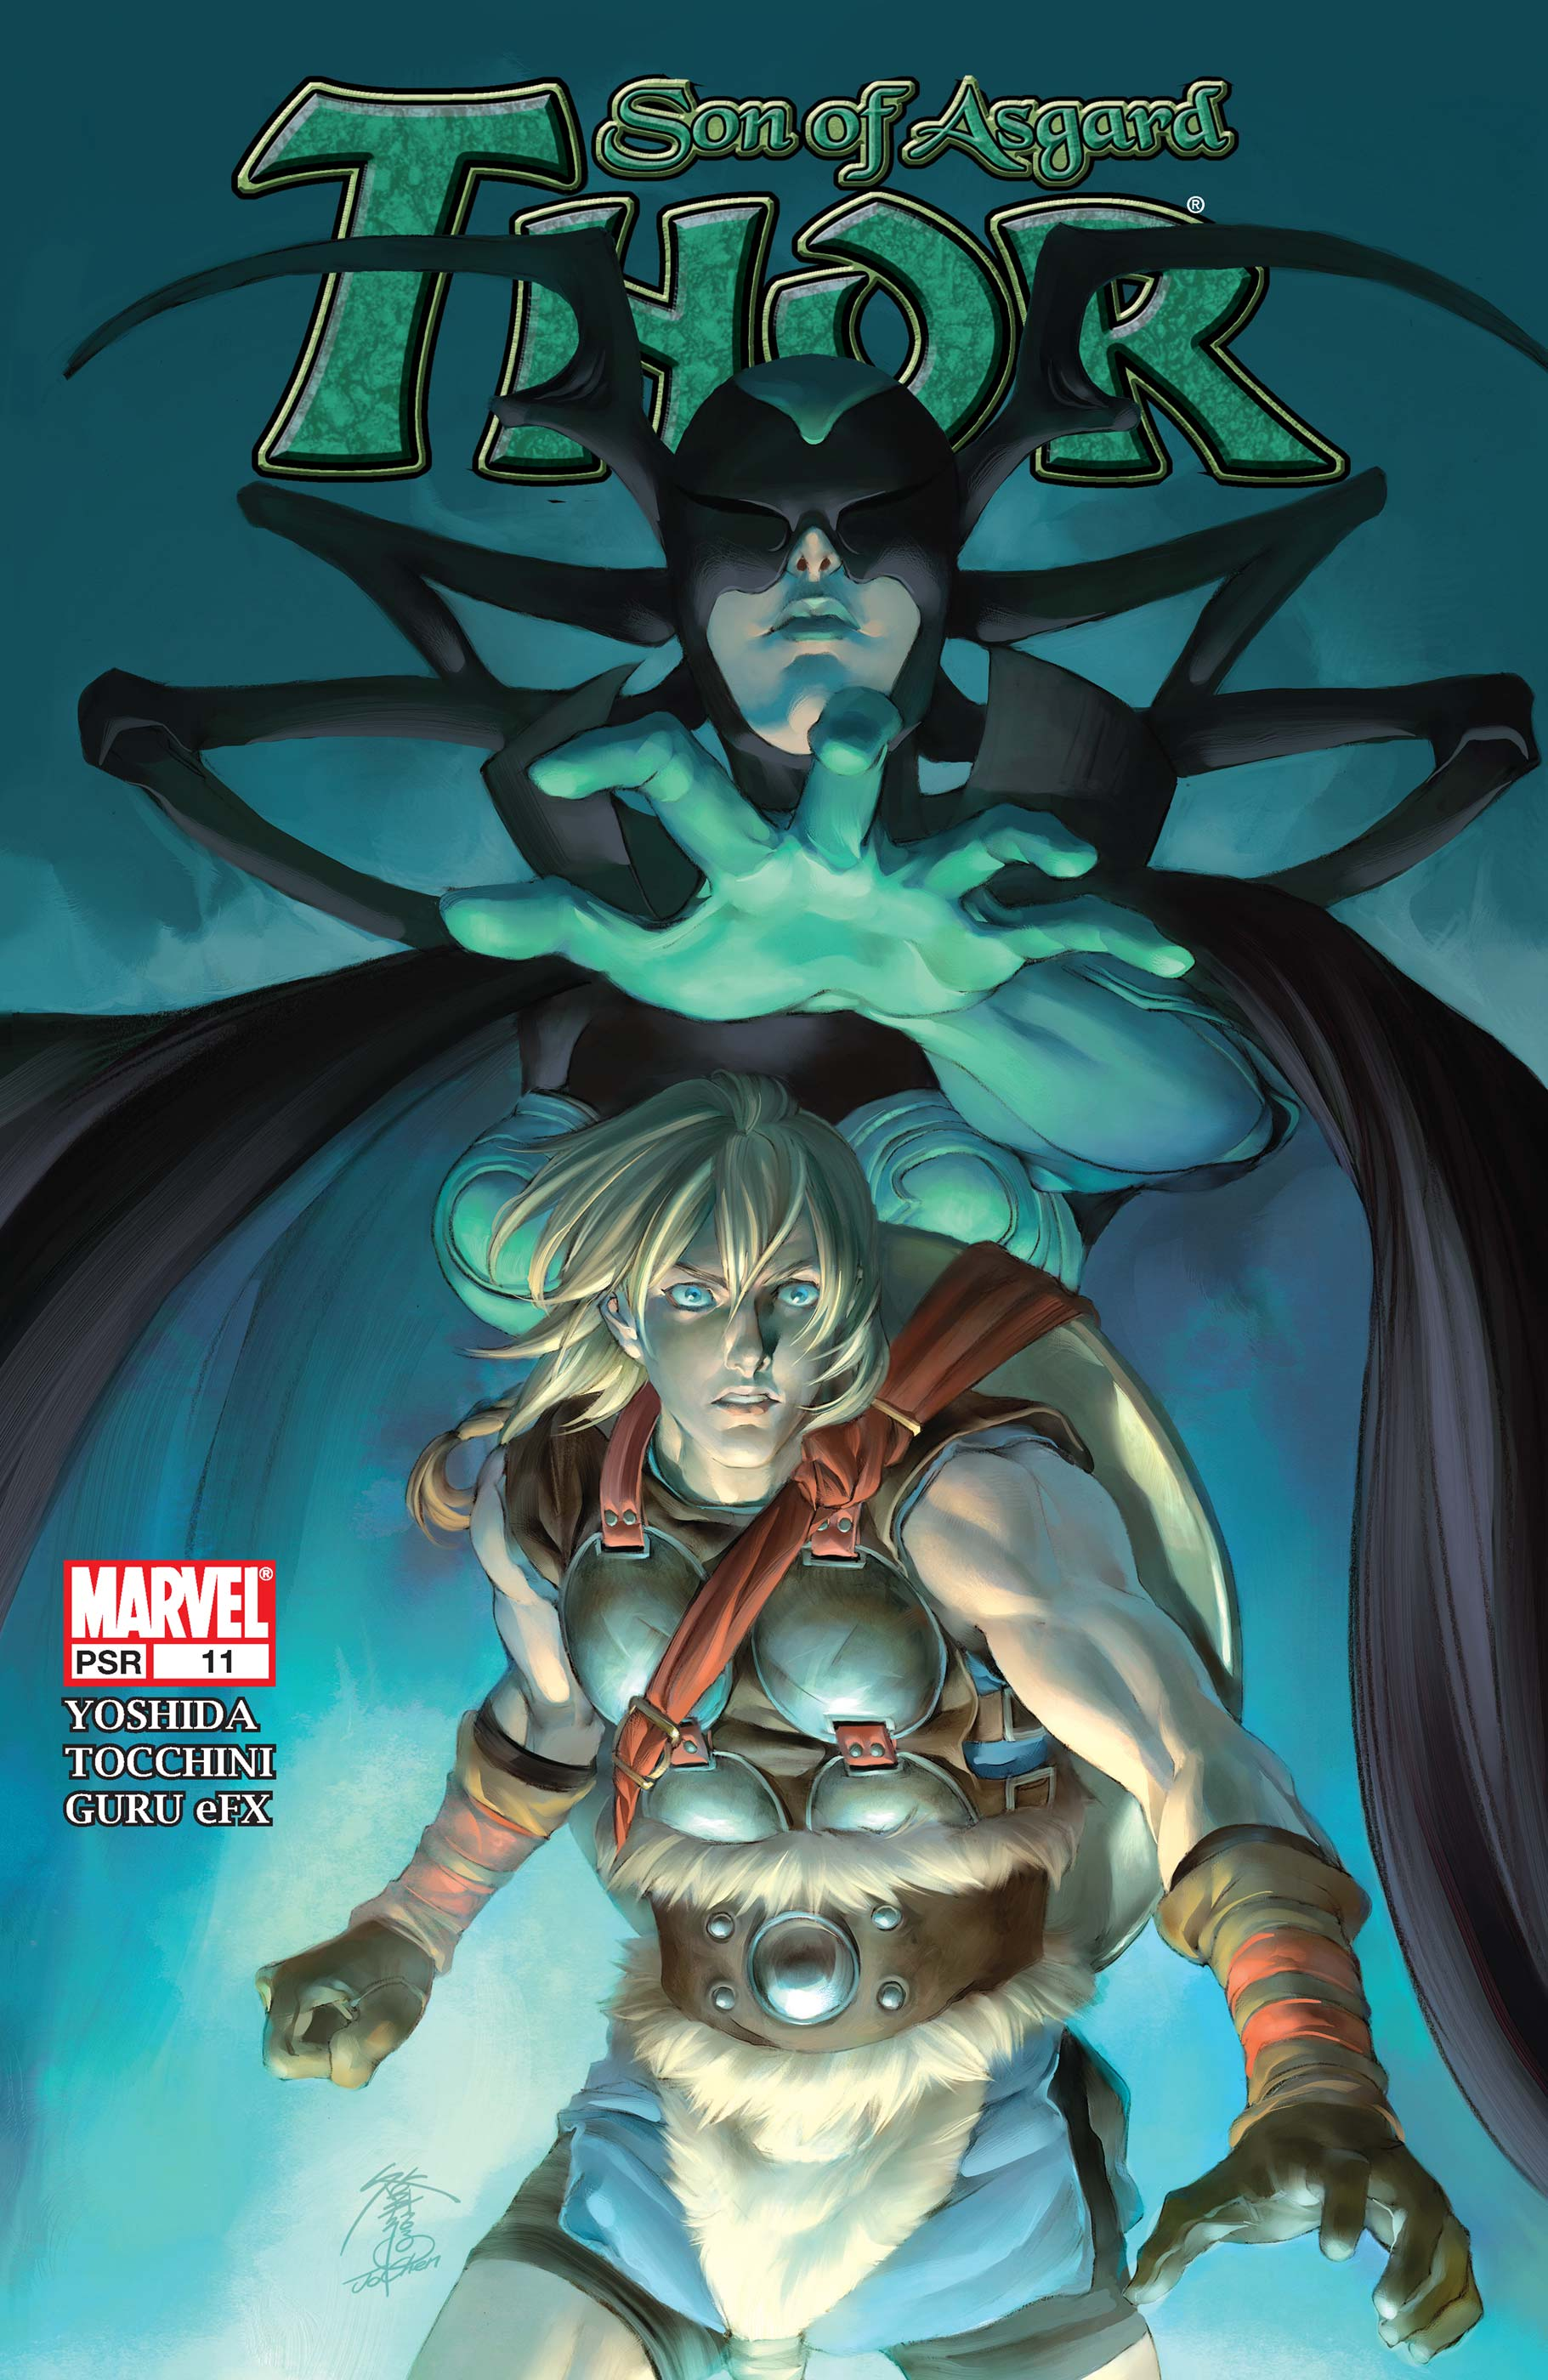 Thor: Son of Asgard (2004) #11